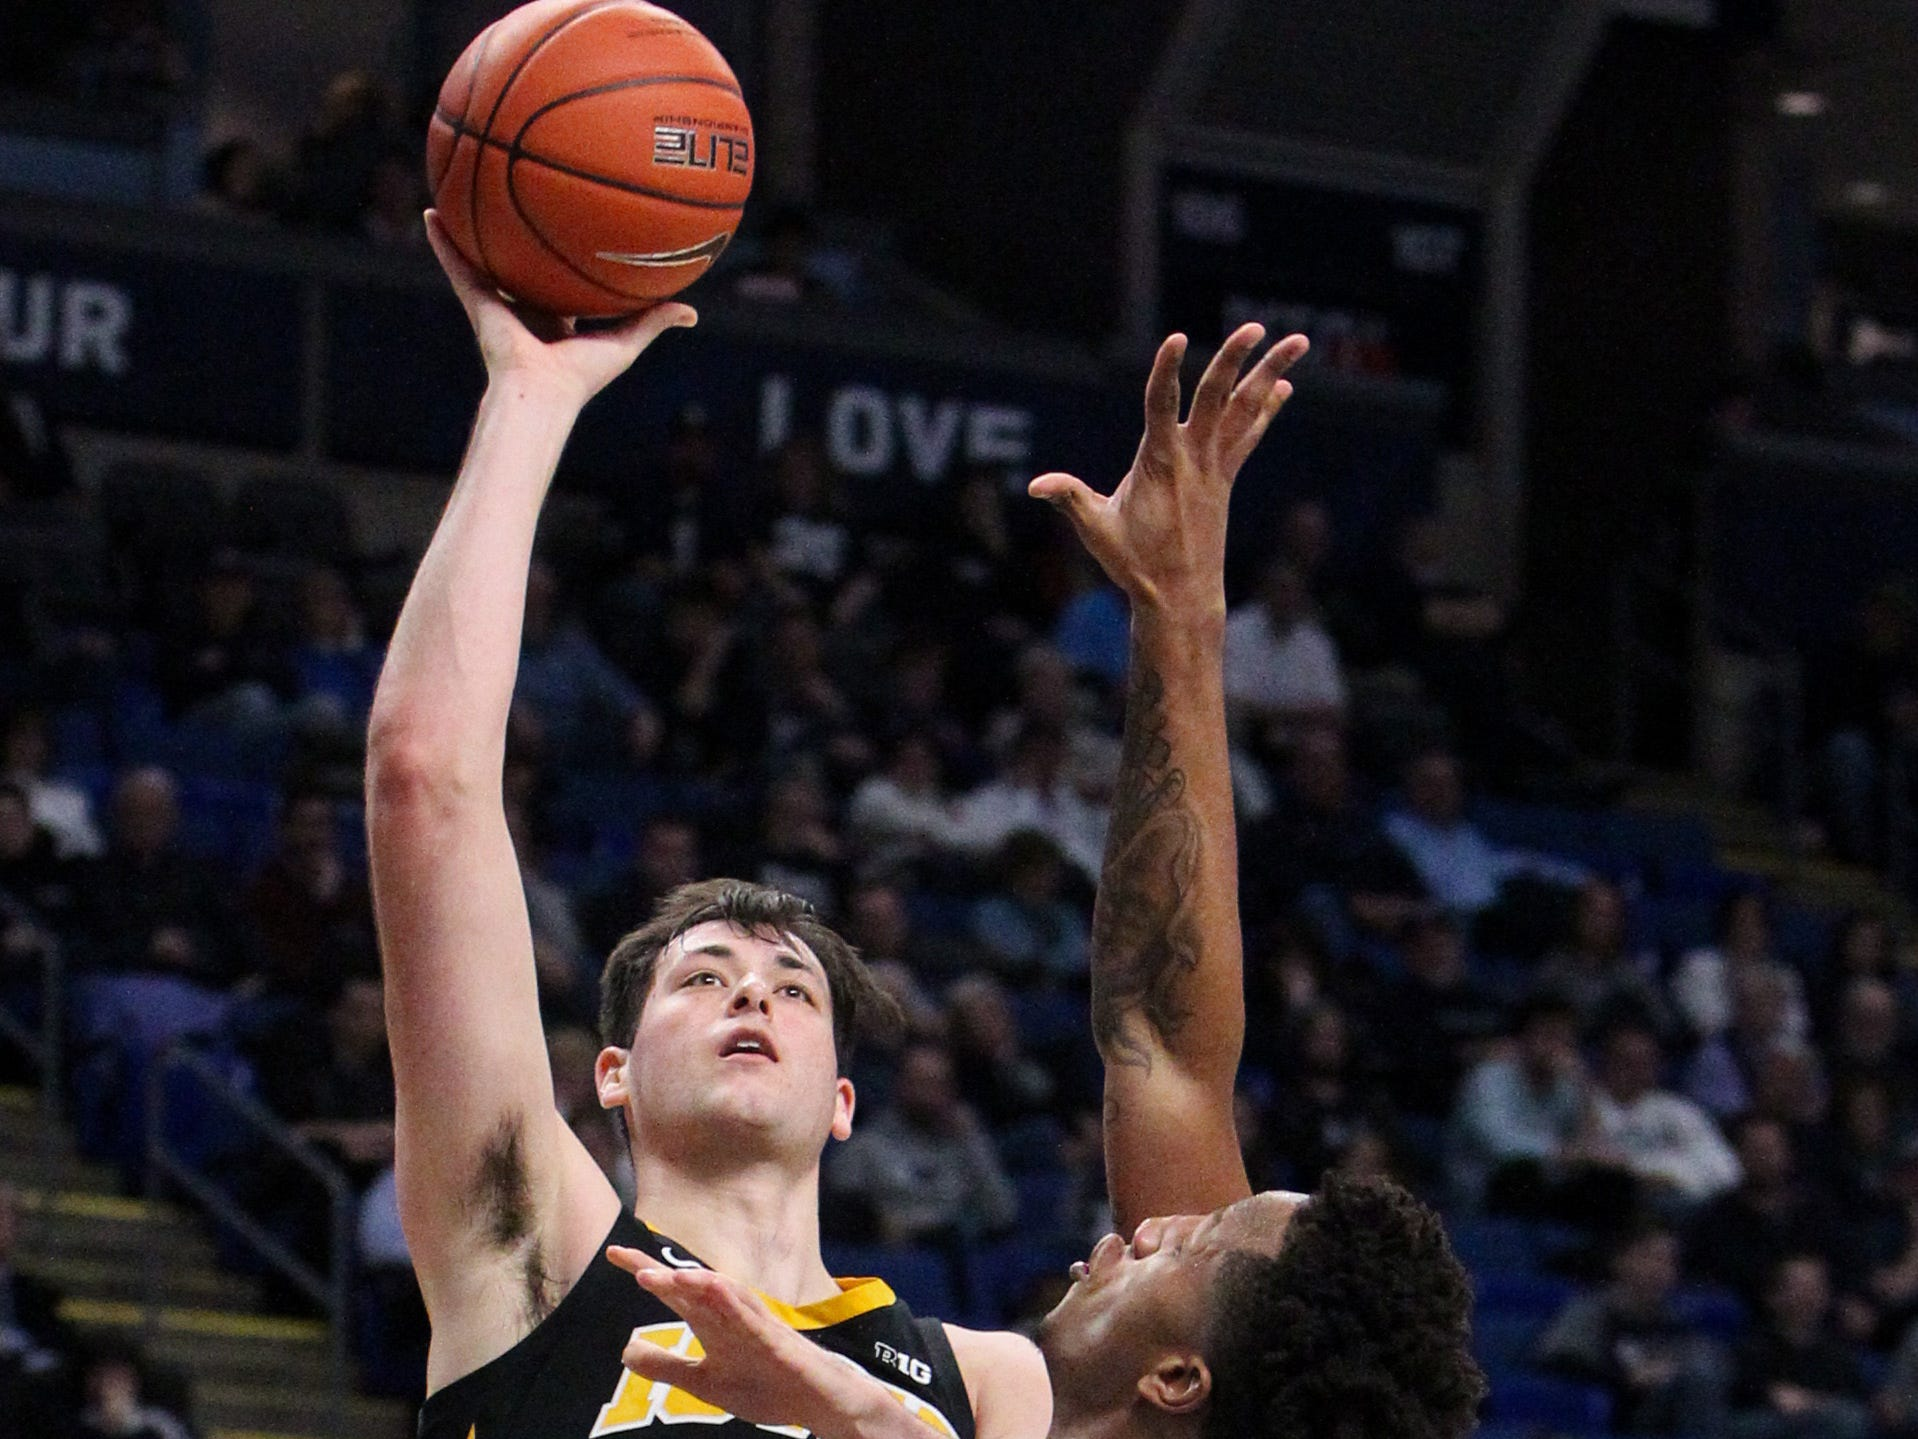 Jan 16, 2019; University Park, PA, USA; Iowa Hawkeyes forward Ryan Kriener (15) shoots the ball as Penn State Nittany Lions forward Lamar Stevens (11) defends during the second half at Bryce Jordan Center. Mandatory Credit: Matthew O'Haren-USA TODAY Sports